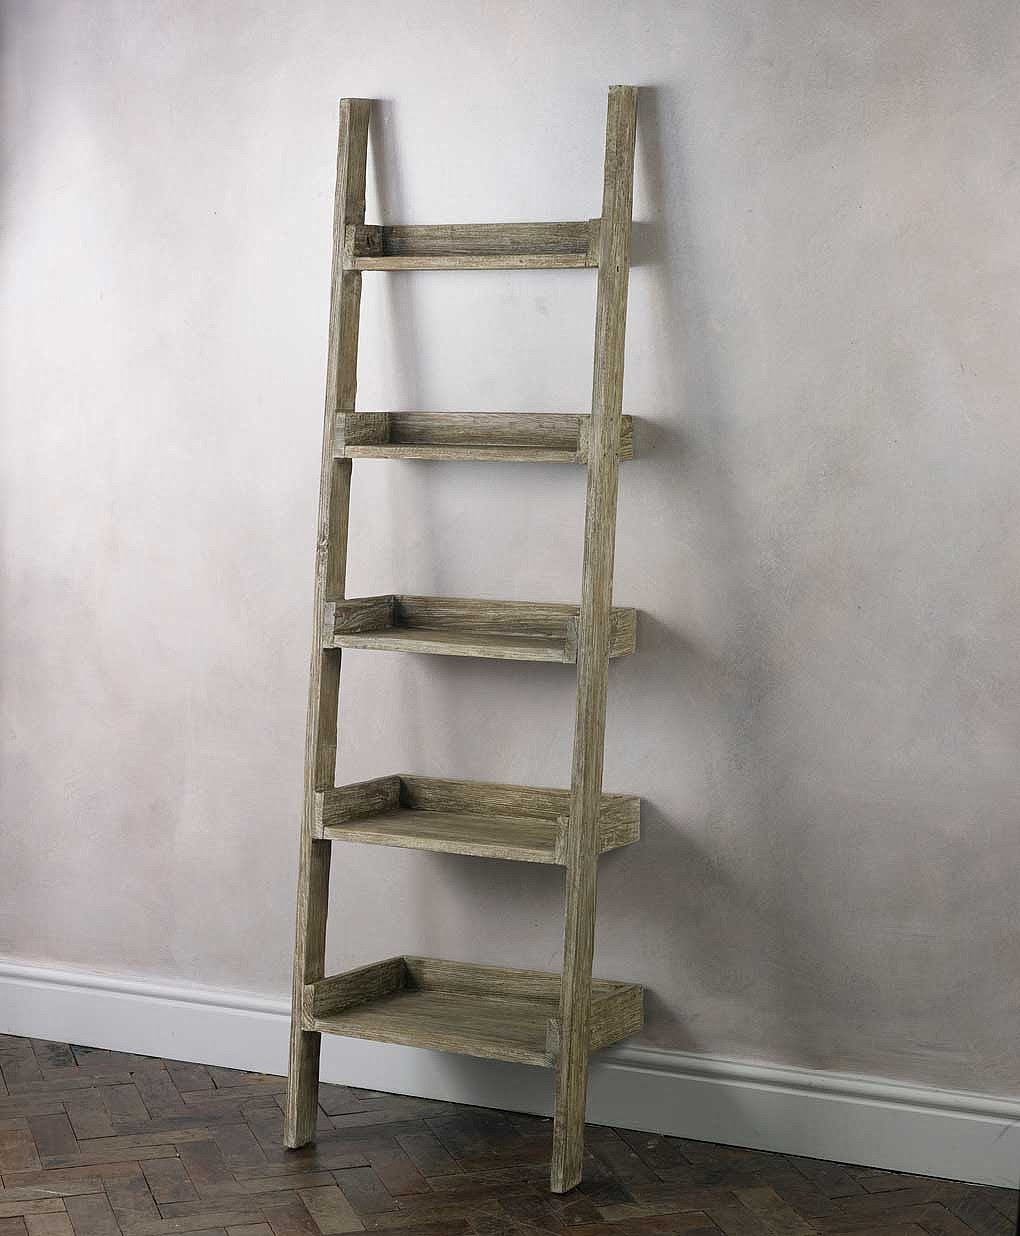 finn ladder shelving unit in rustic design with 5 shelves and grey painted wall and stunning floor patterns